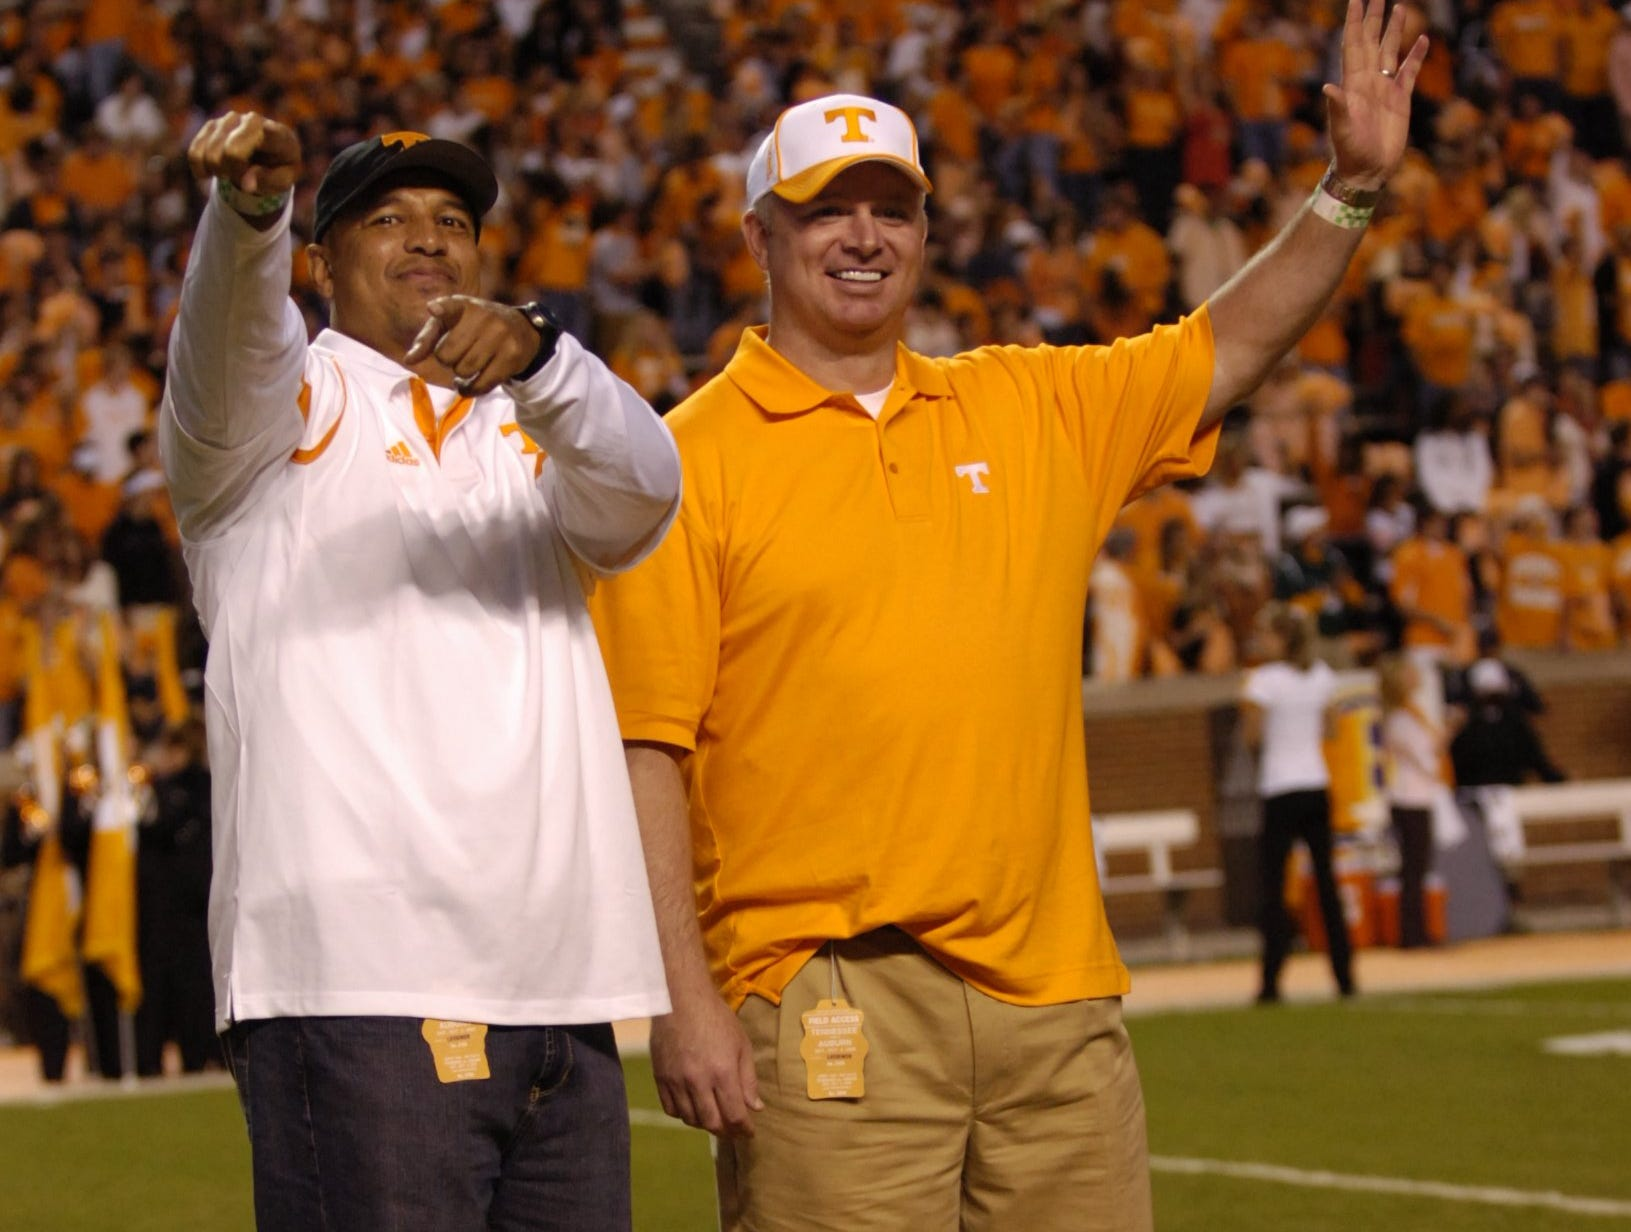 UT legends of the game, former players Carl Pickens and Andy Kelly were recognized before the game on Saturday, October 3rd, 2009 at Neyland Stadium.